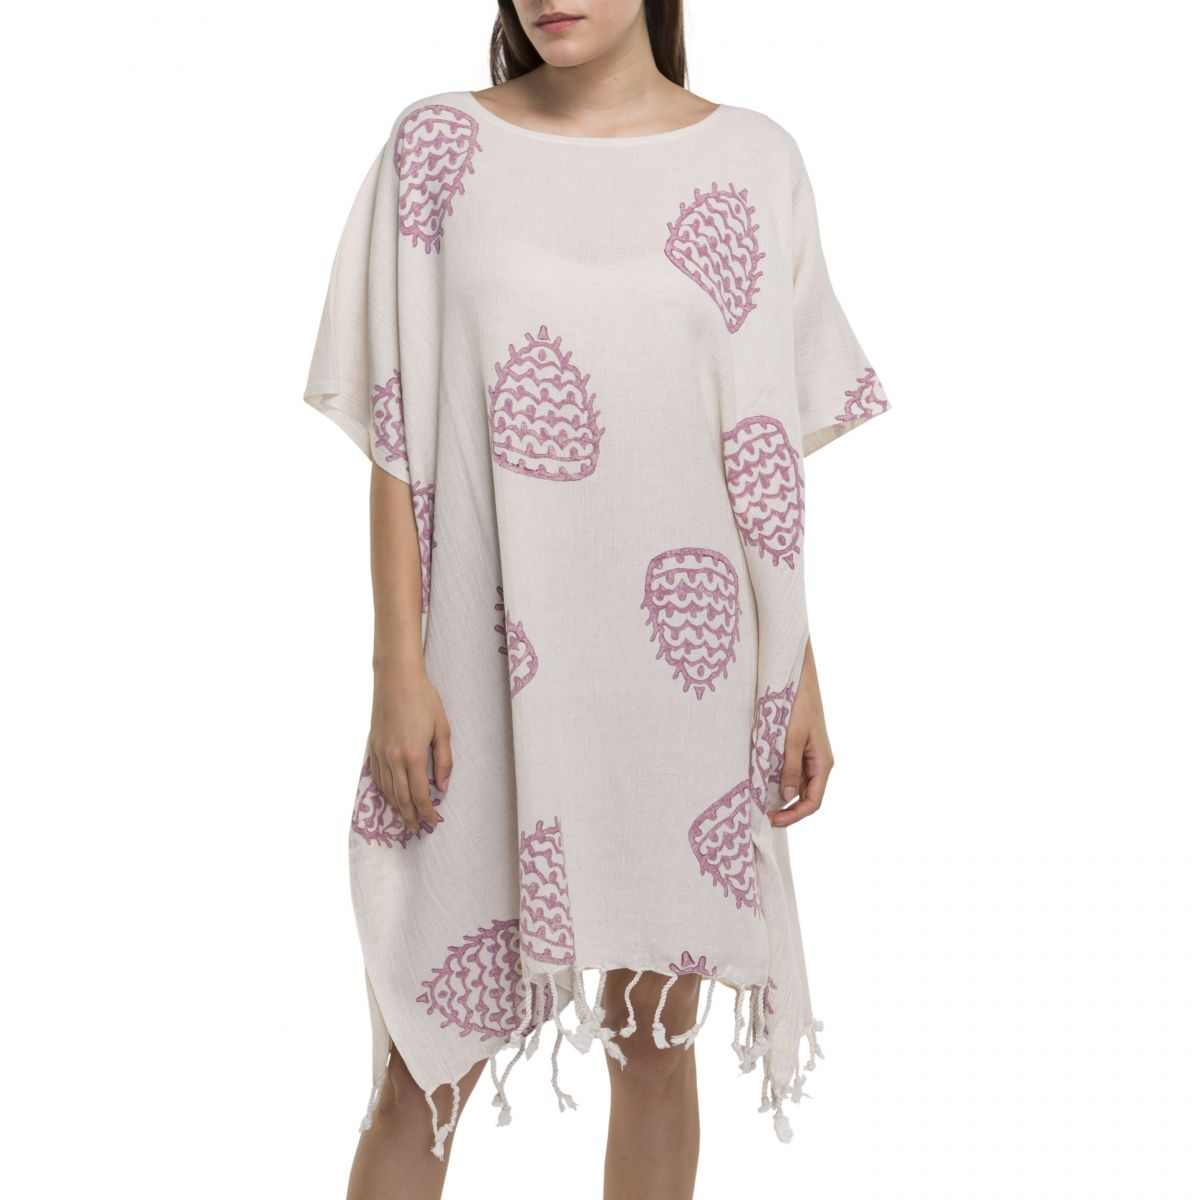 Tunic - Hand Printed 05 / Dusty Rose